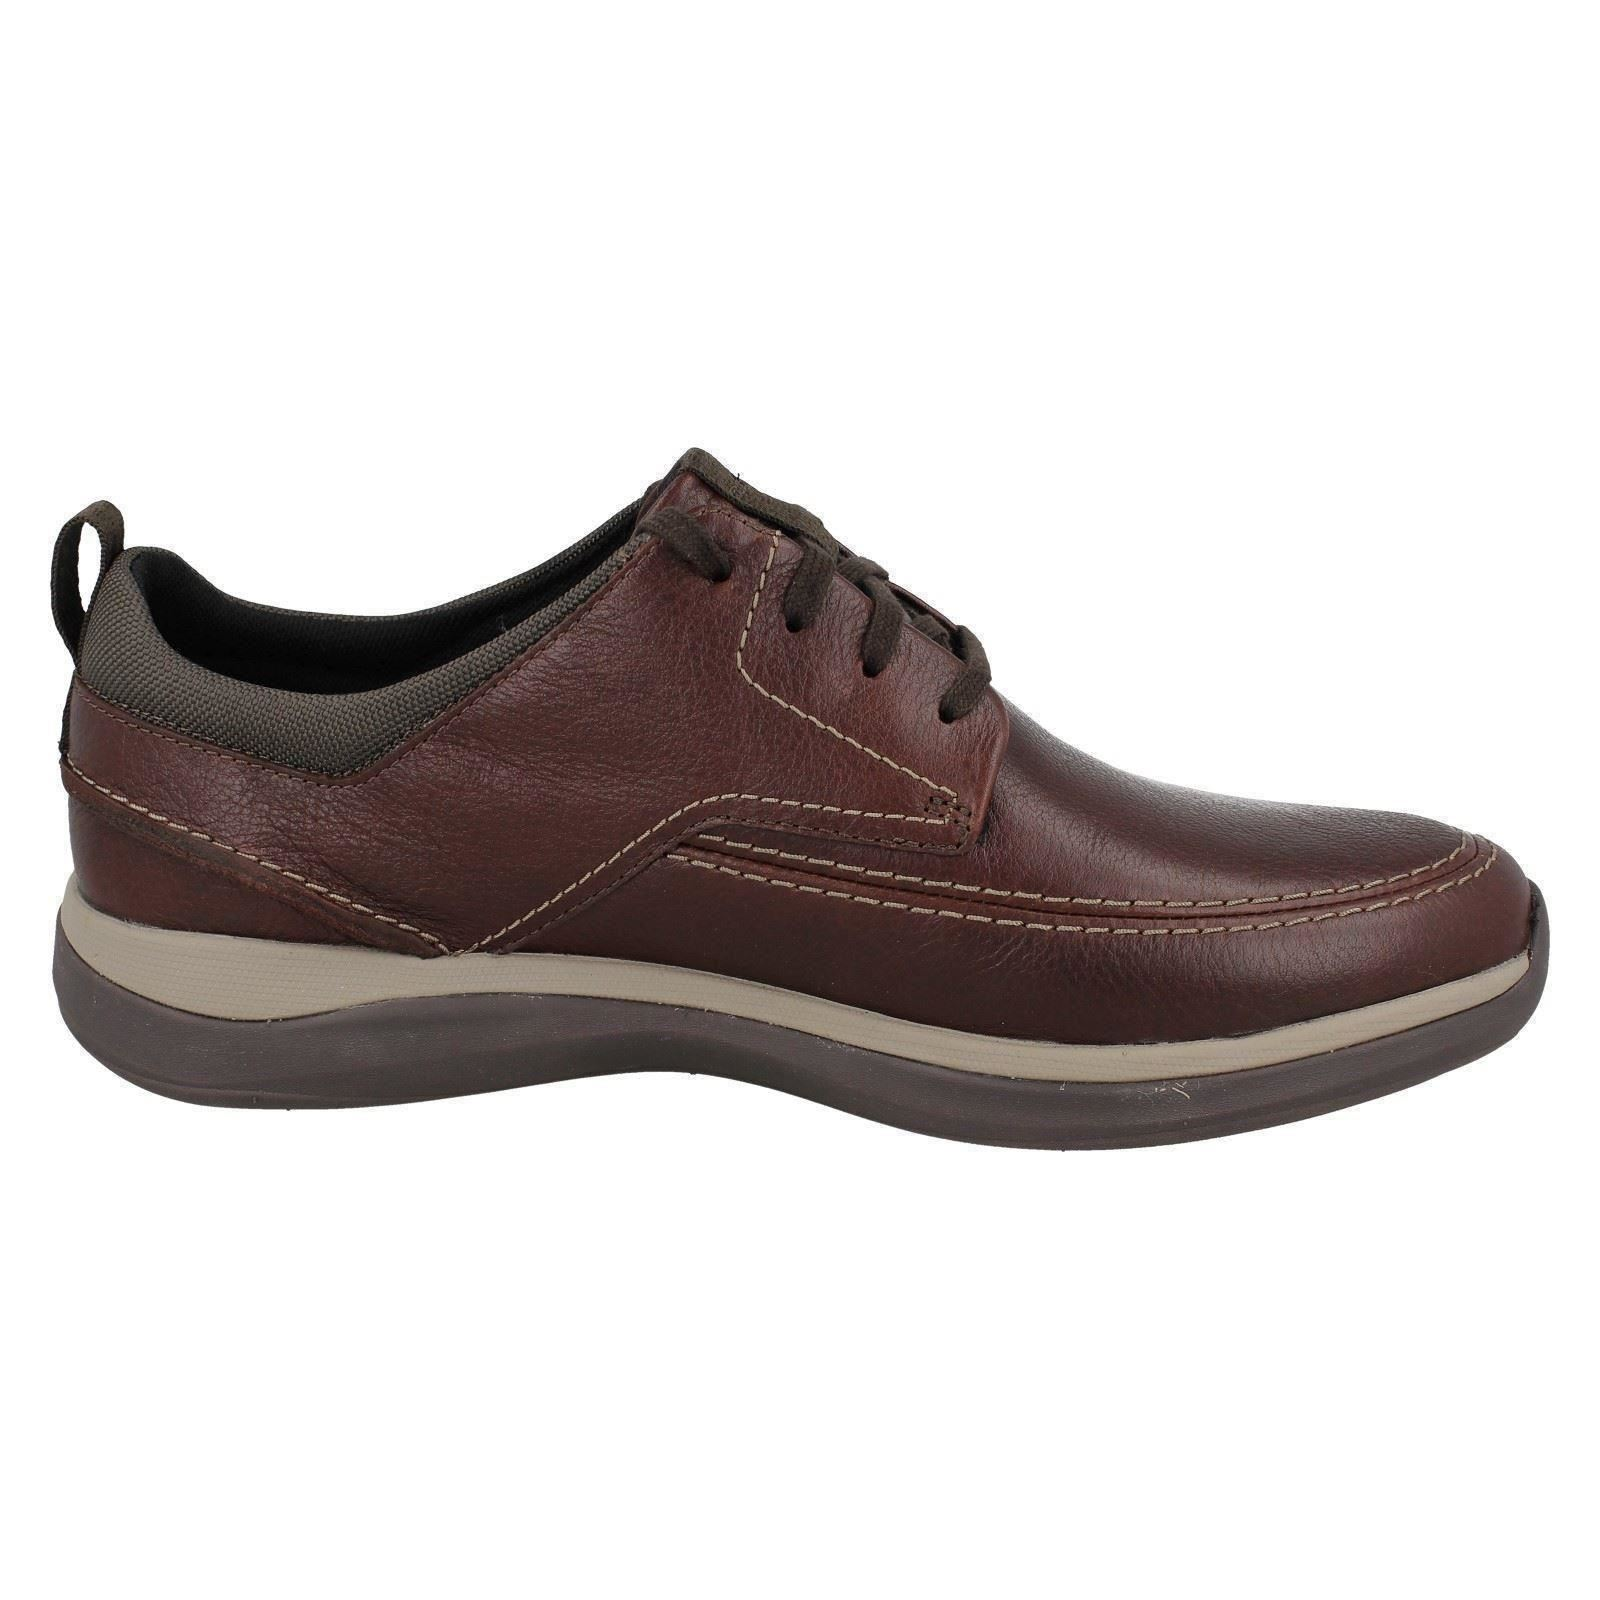 Mens-Unstructured-by-Clarks-Lace-Up-Shoes-039-Garratt-Street-039 thumbnail 14